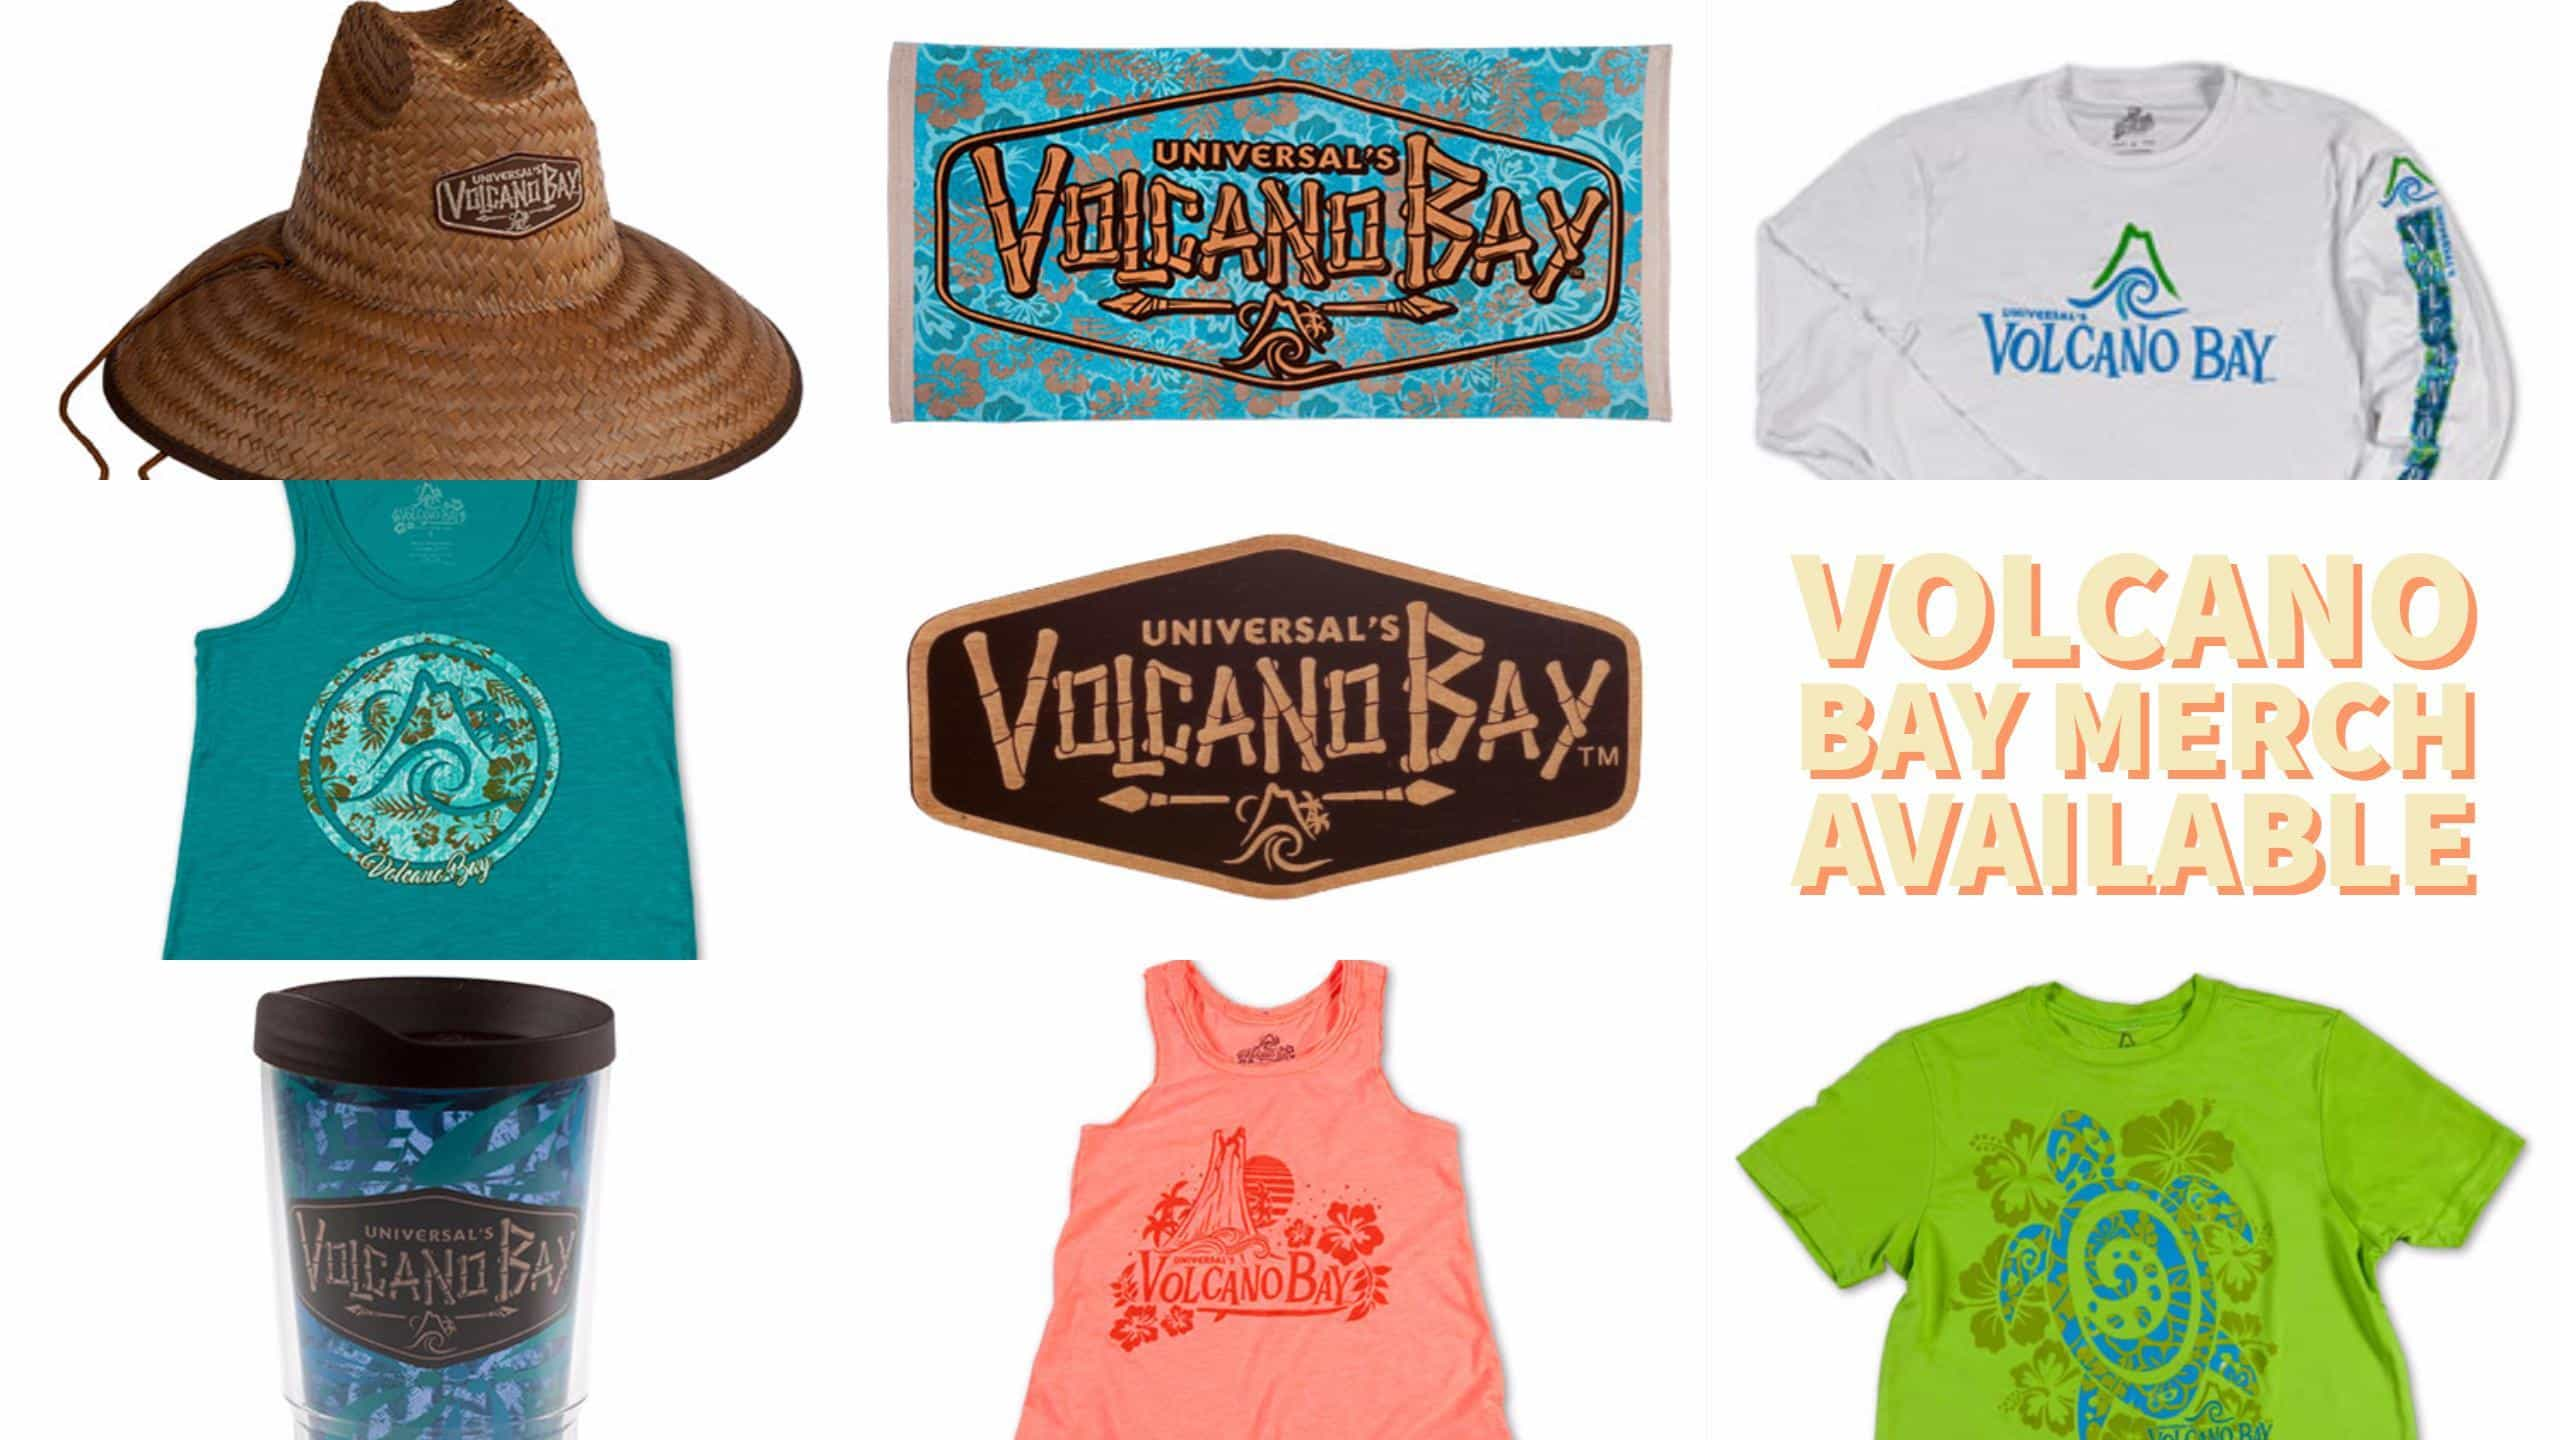 Volcano Bay merchandise available now